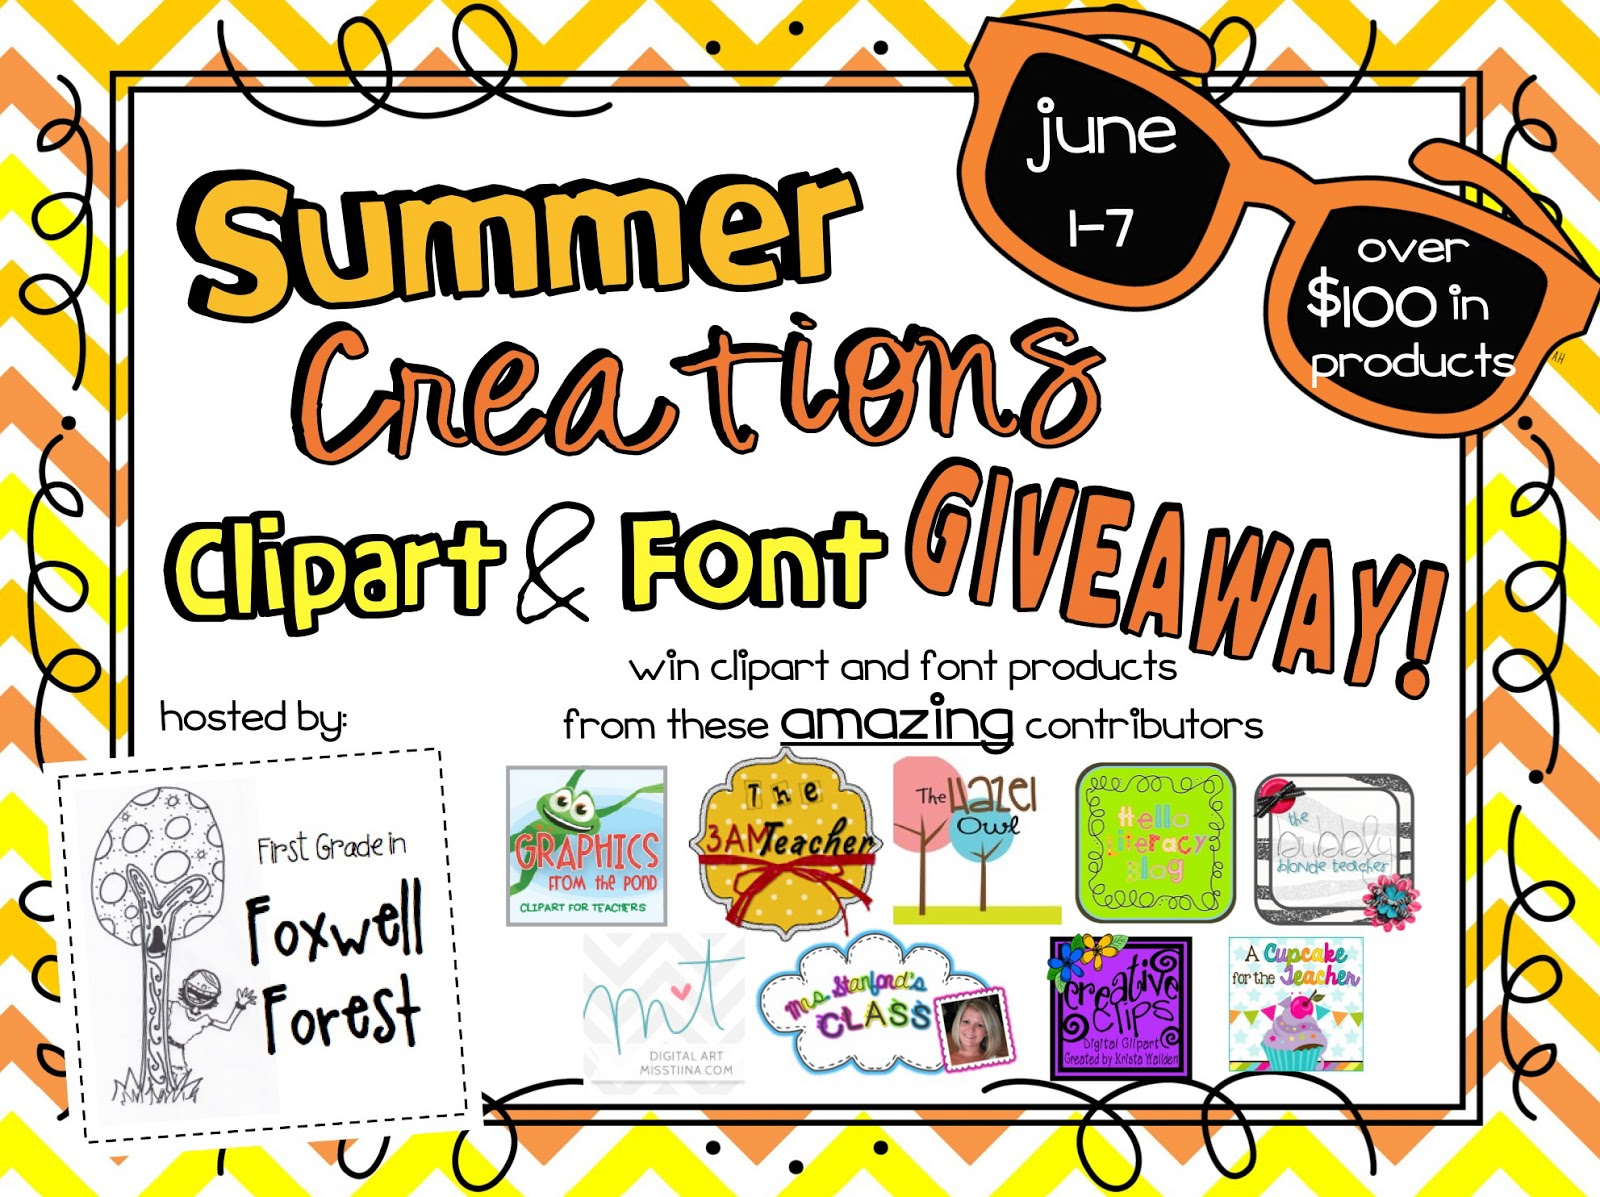 School give away clipart graphic royalty free stock Clipart and Font GIVEAWAY (over $100 in products!) - Foxwell ... graphic royalty free stock